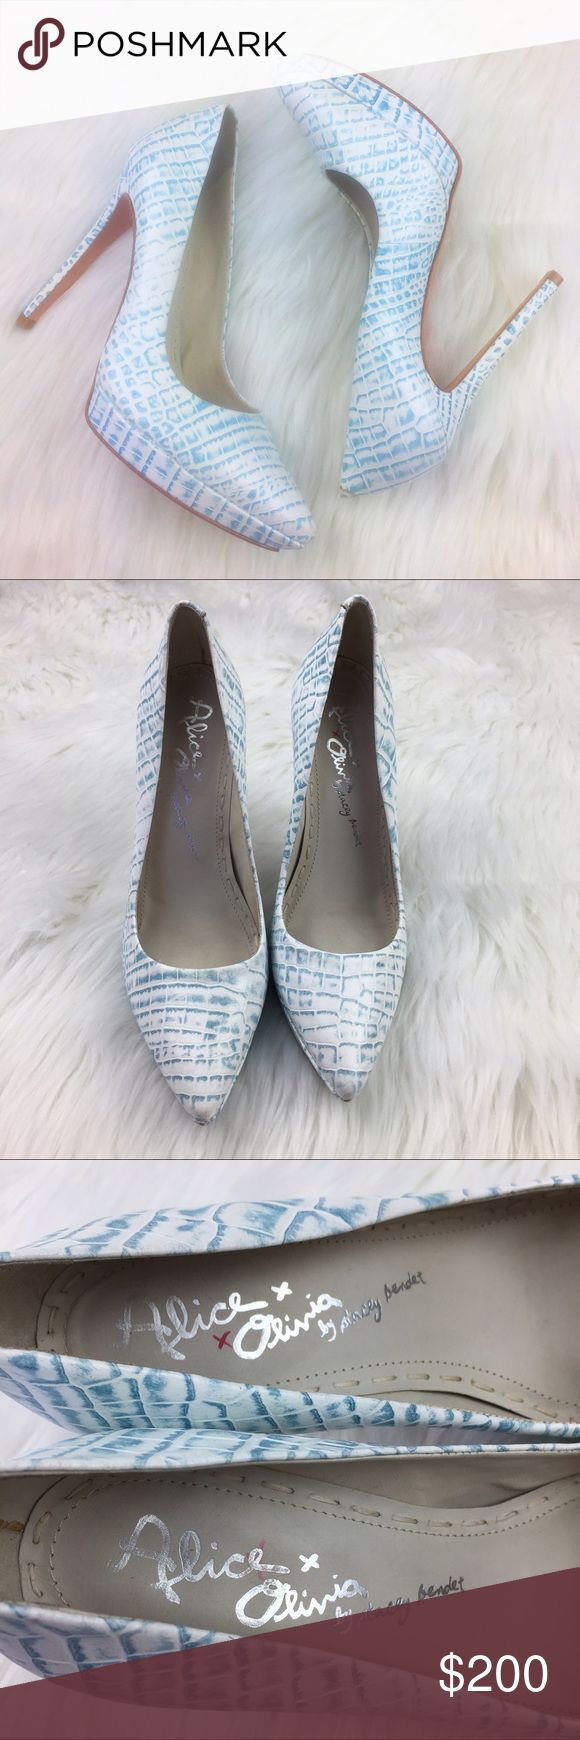 "Alice + Olivia Dina Snakeskin Blue White Pumps •Alice + Olivia Stacey Bendet Blue White Snakeskin Crocodile Alligator Patterned Dina Pumps •Women's Size 38 •In excellent used condition with light signs of wear on bottom and inner sole - worn once •Retail $295 •Heel height is approximately 4.5"" Alice + Olivia Shoes Heels"